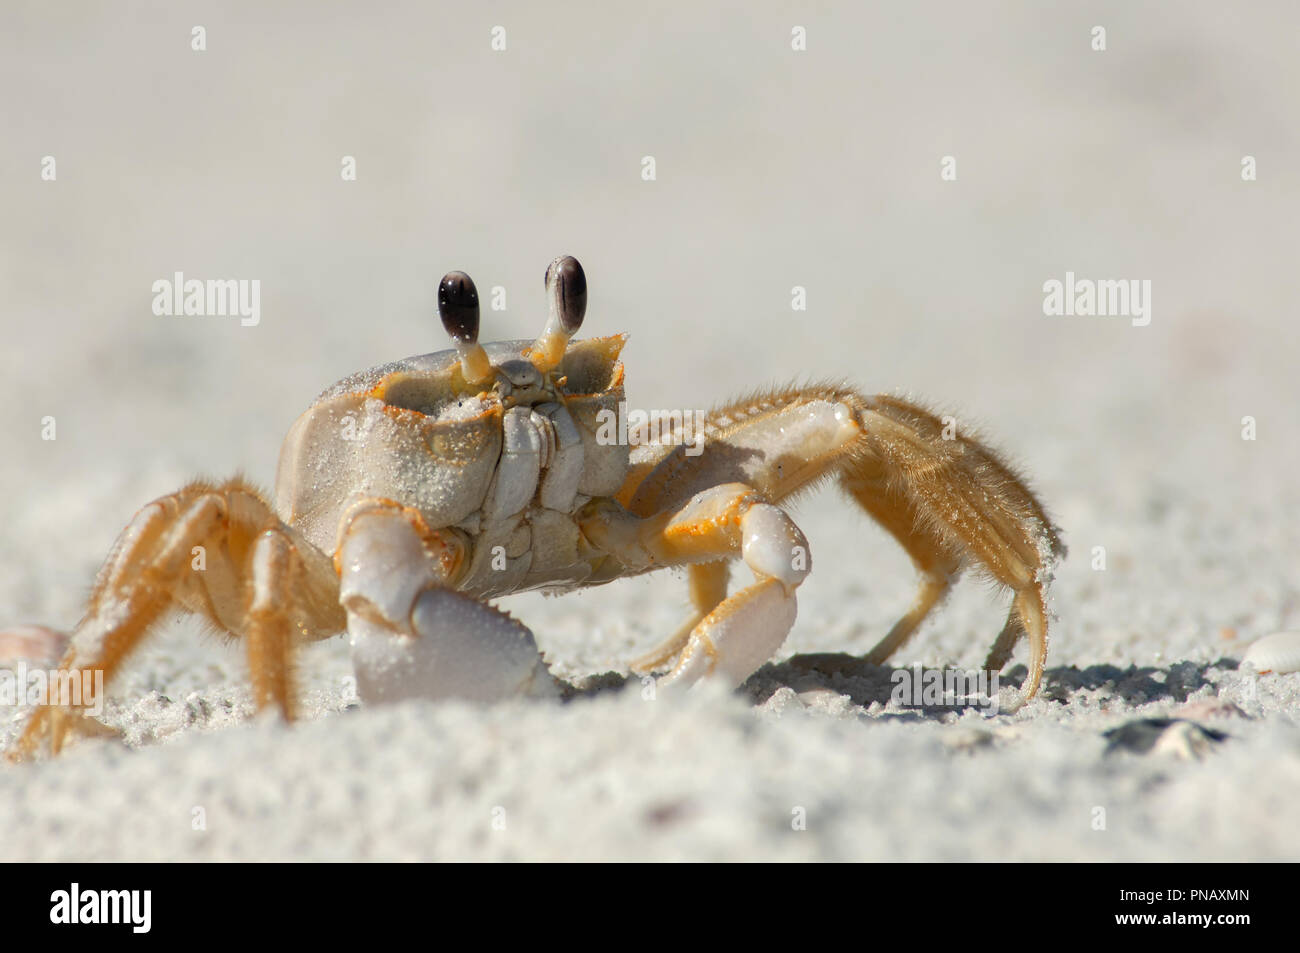 A semiterrestrial ghost crab (Ocypodinae arthropods) walks through the sand along Wiggins Pass, Florida. It is also sometimes known as a sand crab. - Stock Image